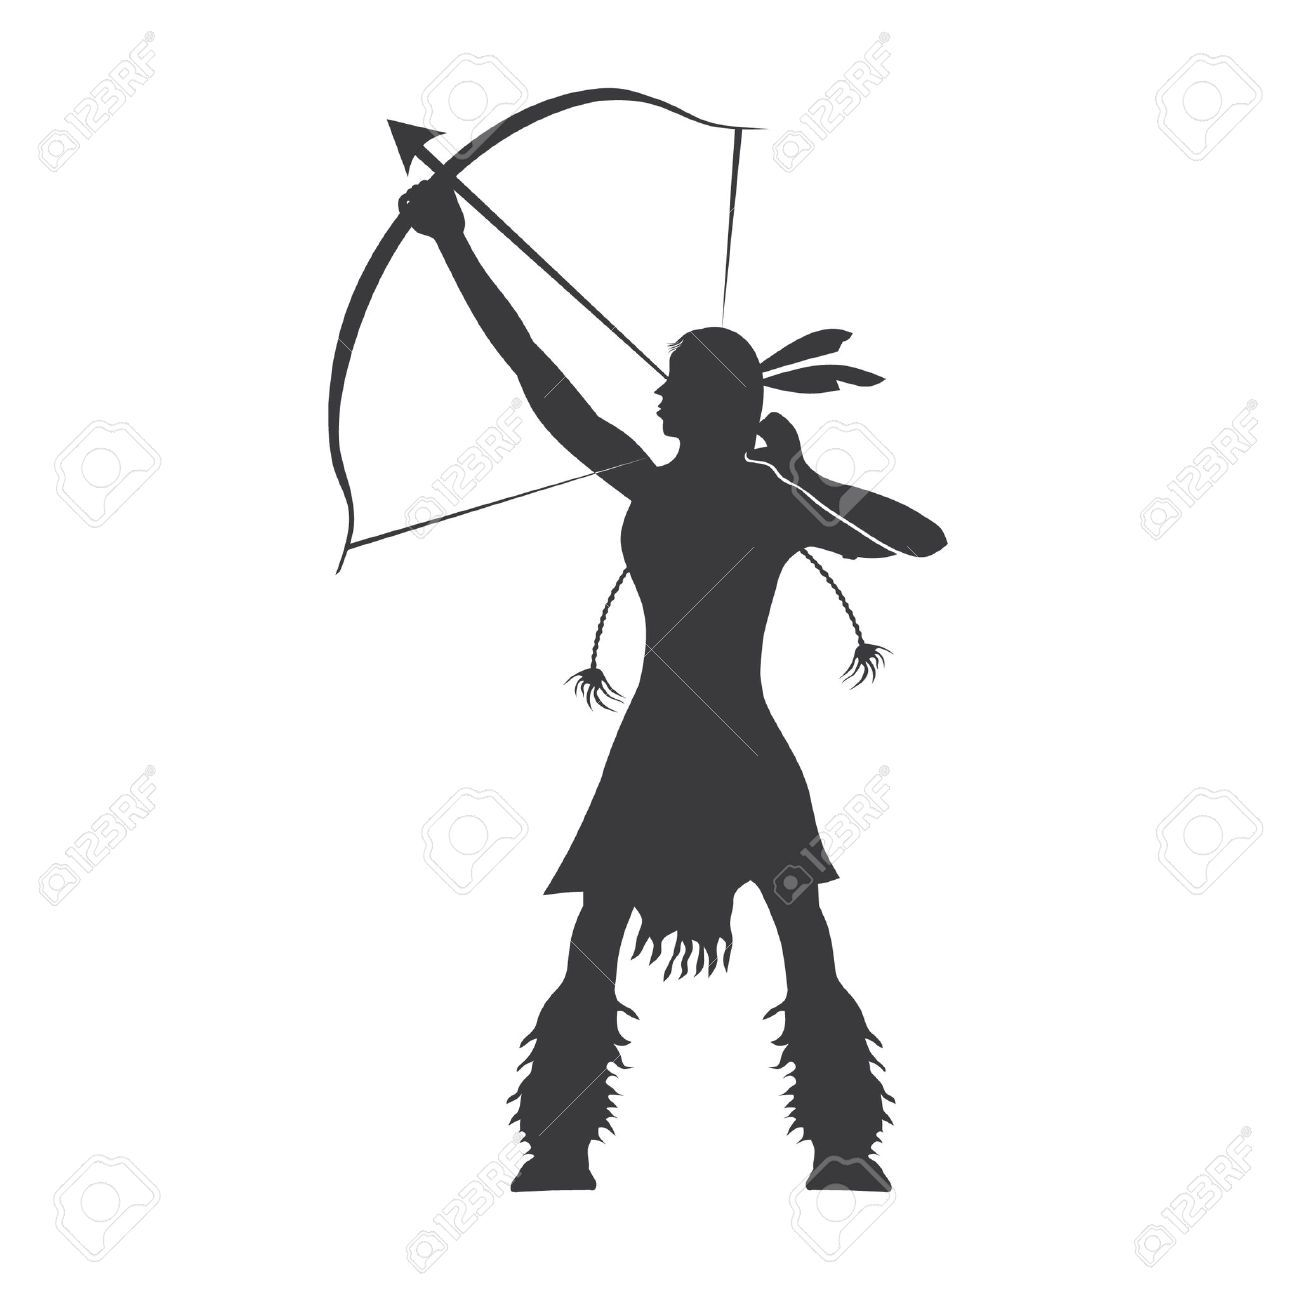 1300x1300 Images For Gt Native American Head Silhouette Indian